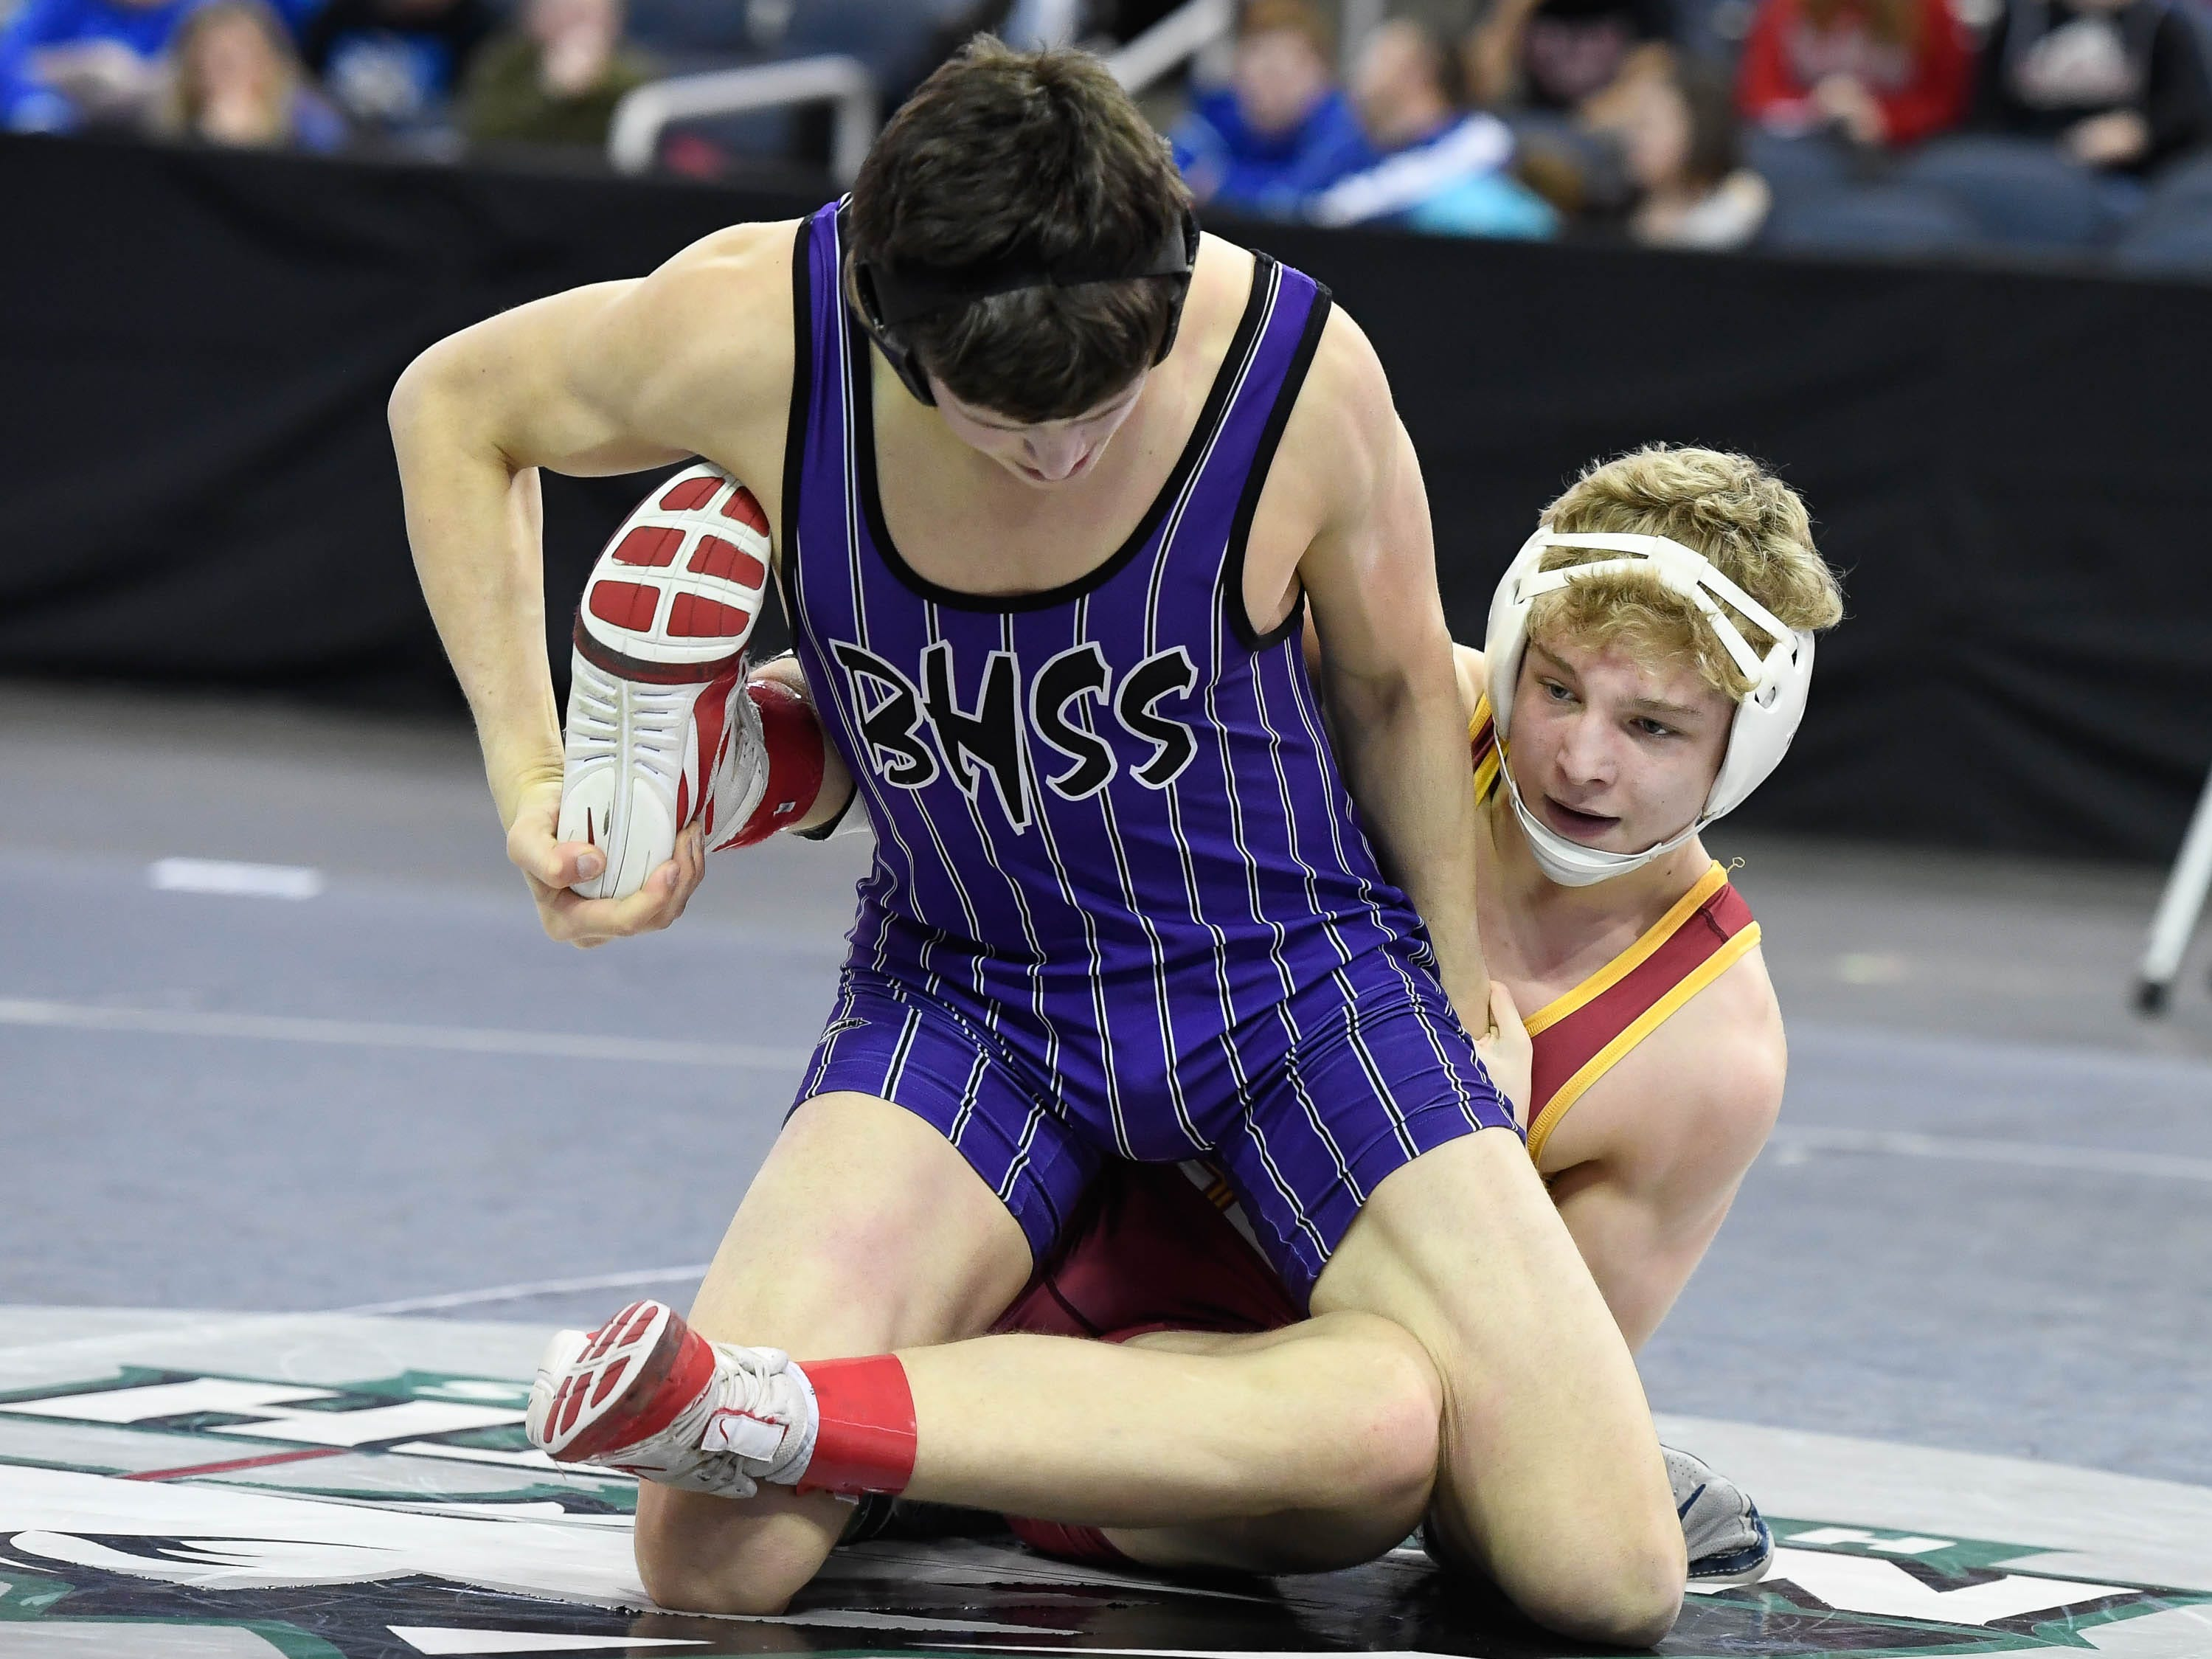 Gabe Sollars, Evansville Mater Dei, wrestles Tristan Ruhlman, Bloomington South, in the 160 weight class at the Indiana High School Athletic Association Semi-State Wrestling Tournament held at the Ford Center Saturday, February 9, 2019.